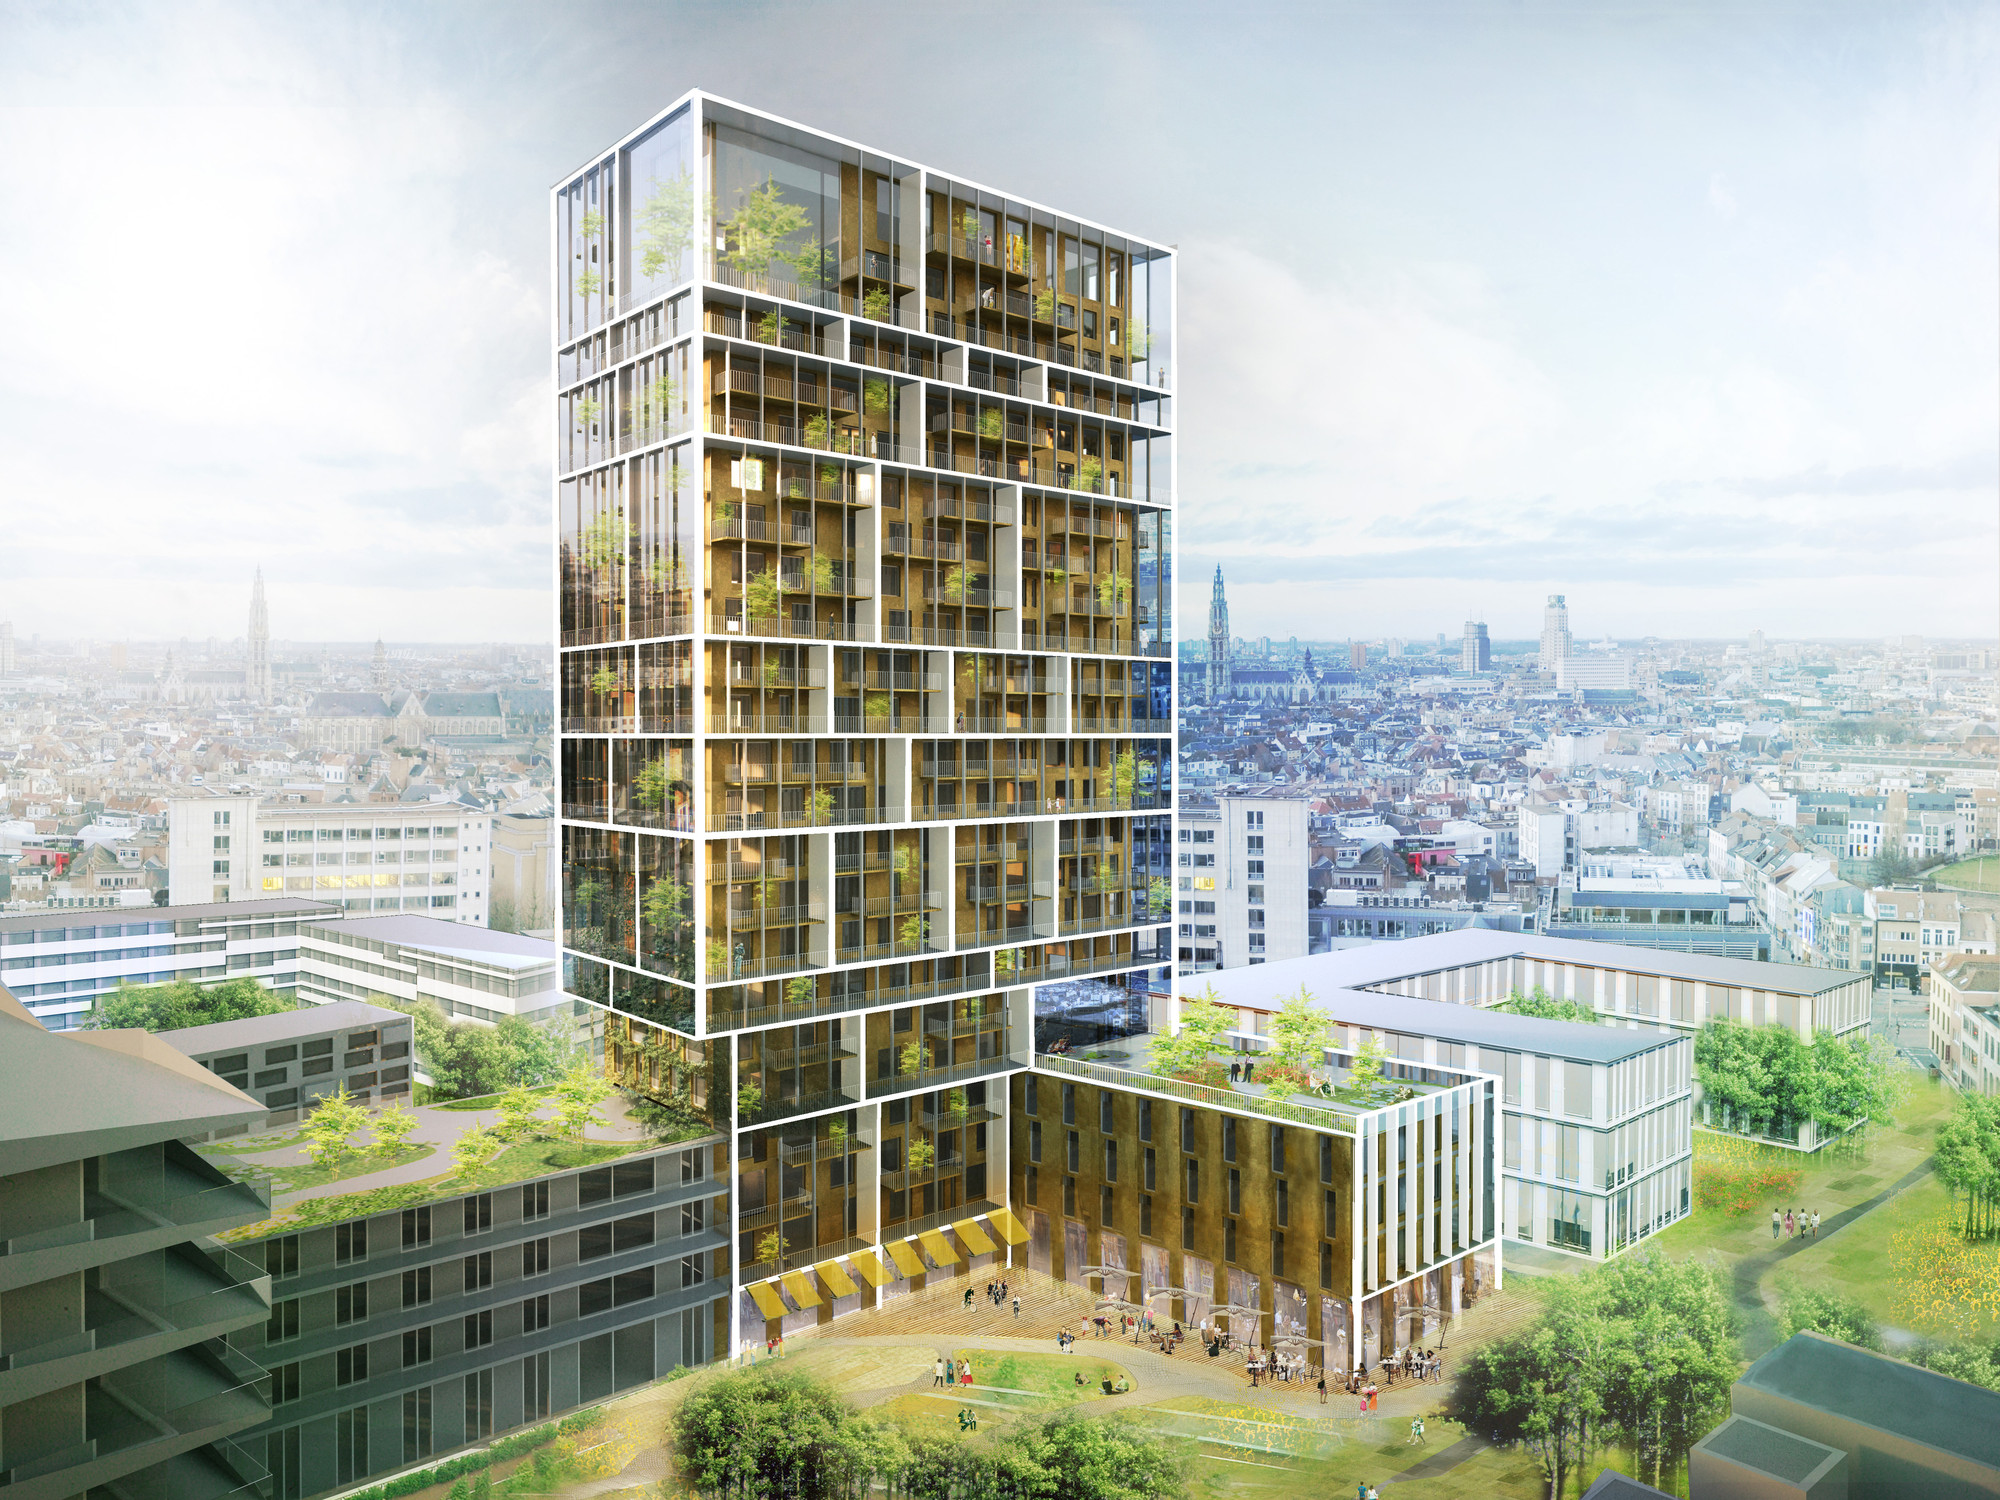 C.F. Møller Chosen to Design Antwerp Residential Tower , C.F. Møller's residential and mix-use tower design in Antwerp, Belgium.